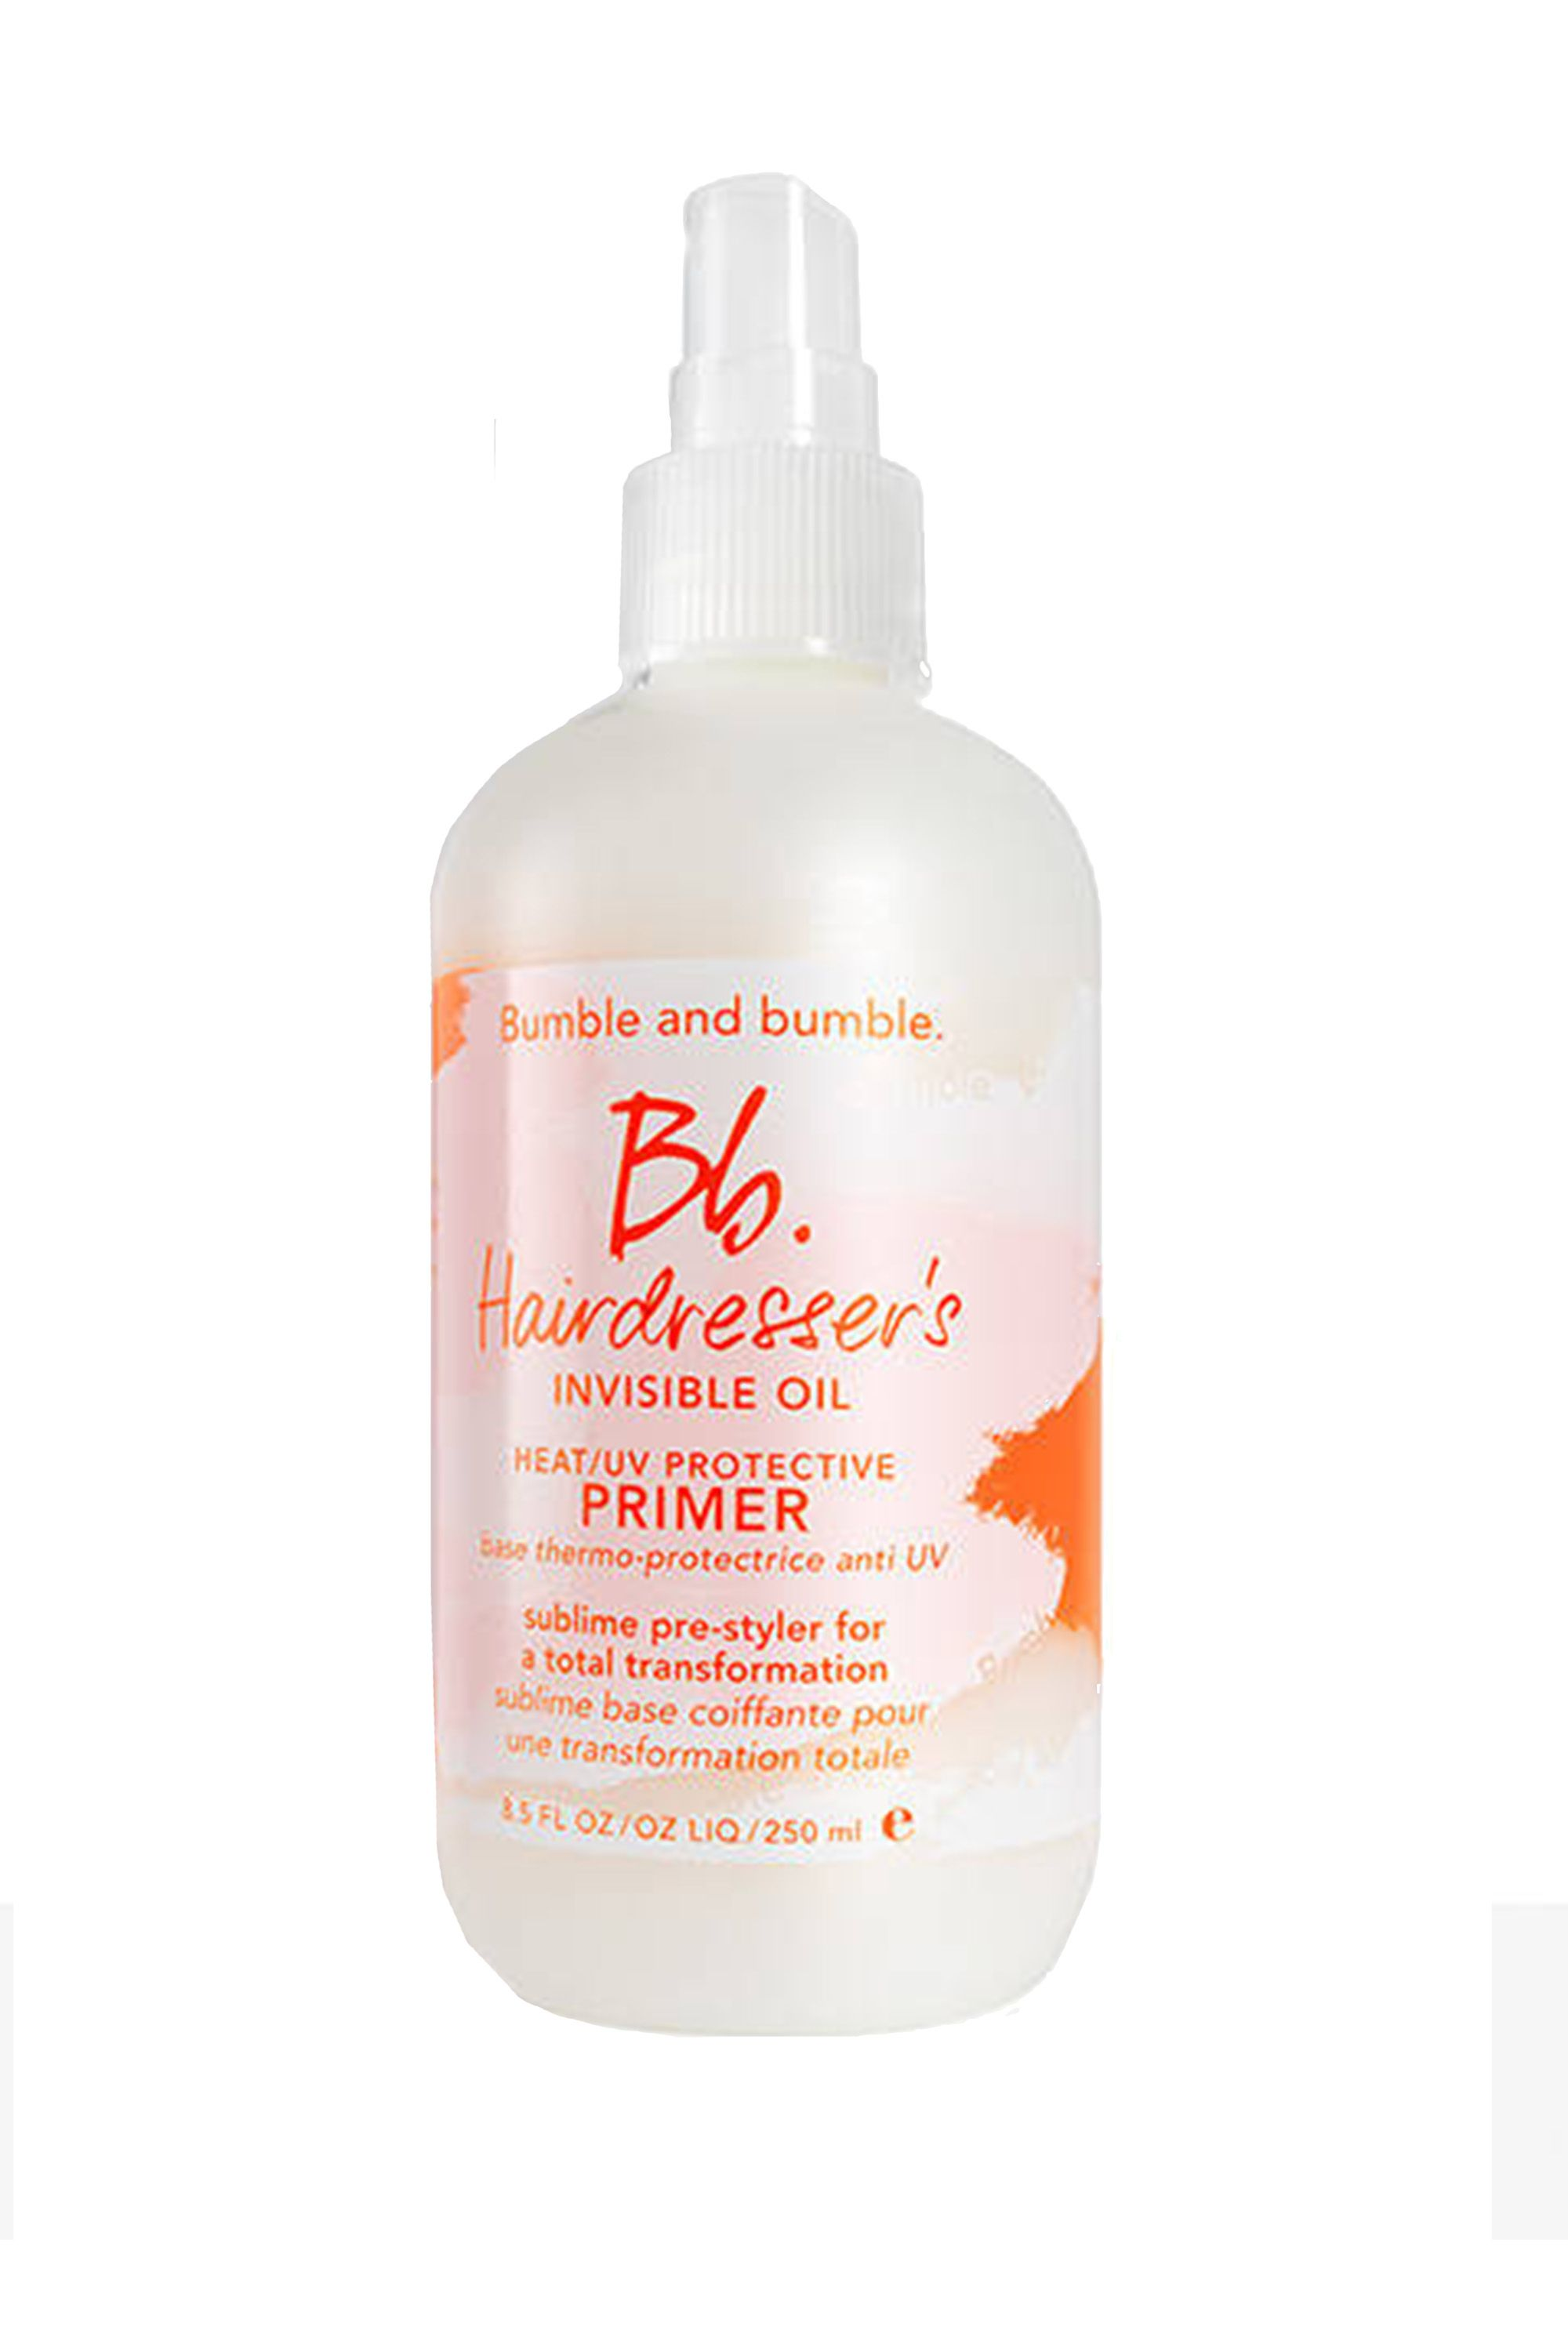 """<p>If you're planning on piling on the products, consider starting with a solid foundation, like this primer that's packed with six, count 'em, six oils to smooth, soften, and tame strands while protecting them from UV damage.</p><p>$28, <a href=""""http://www.bumbleandbumble.com/product/19055/31247..."""" data-tracking-id=""""recirc-text-link"""">bumbleandbumble.com</a></p>"""